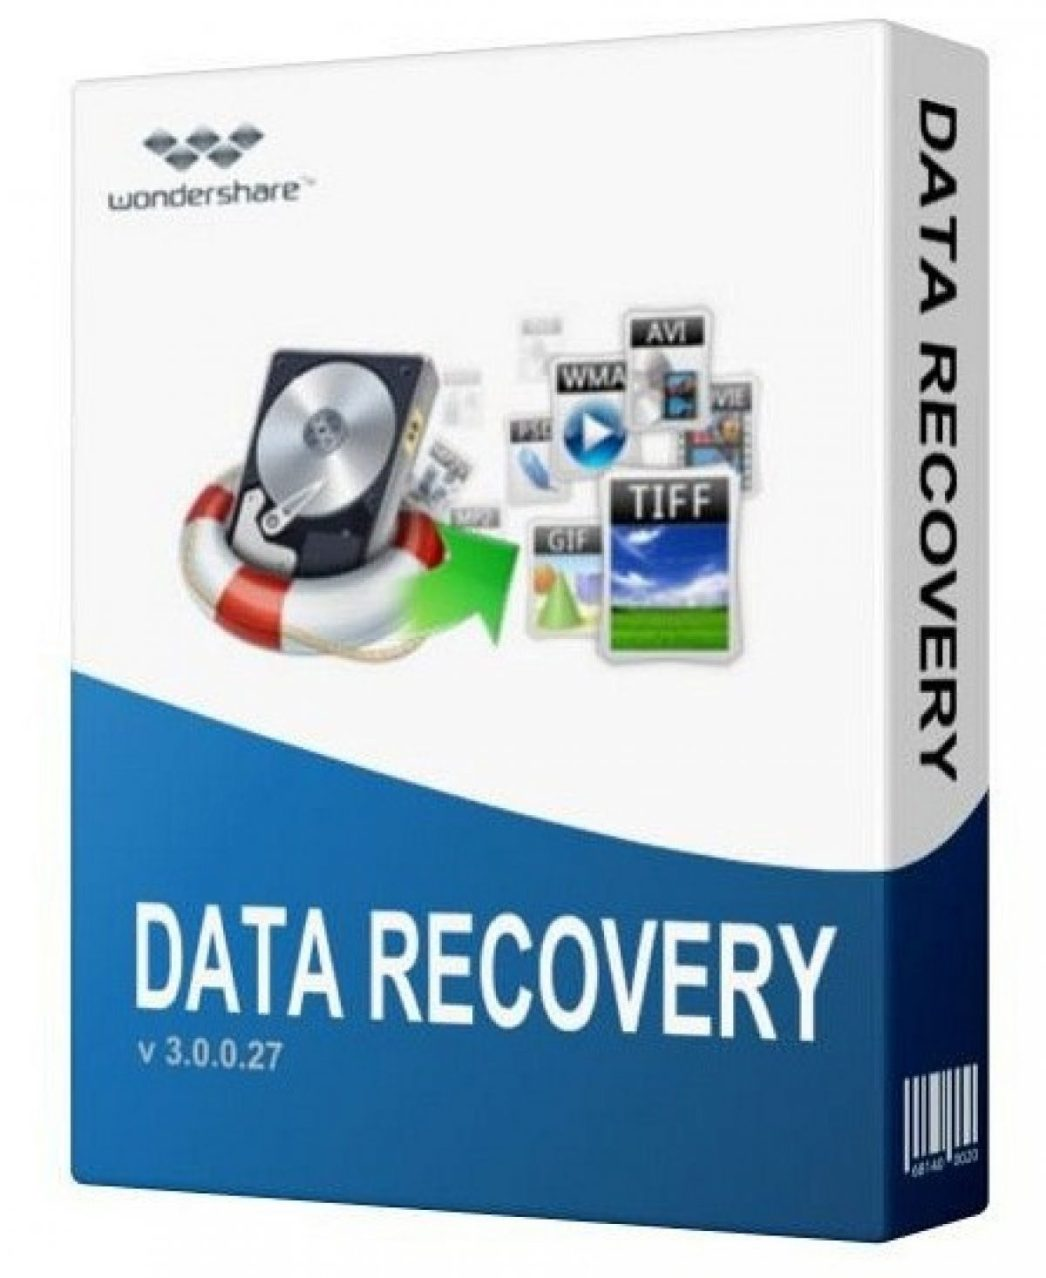 wondershare_data_recovery_cover_windroidmedia-com_-1200x1466-2723111